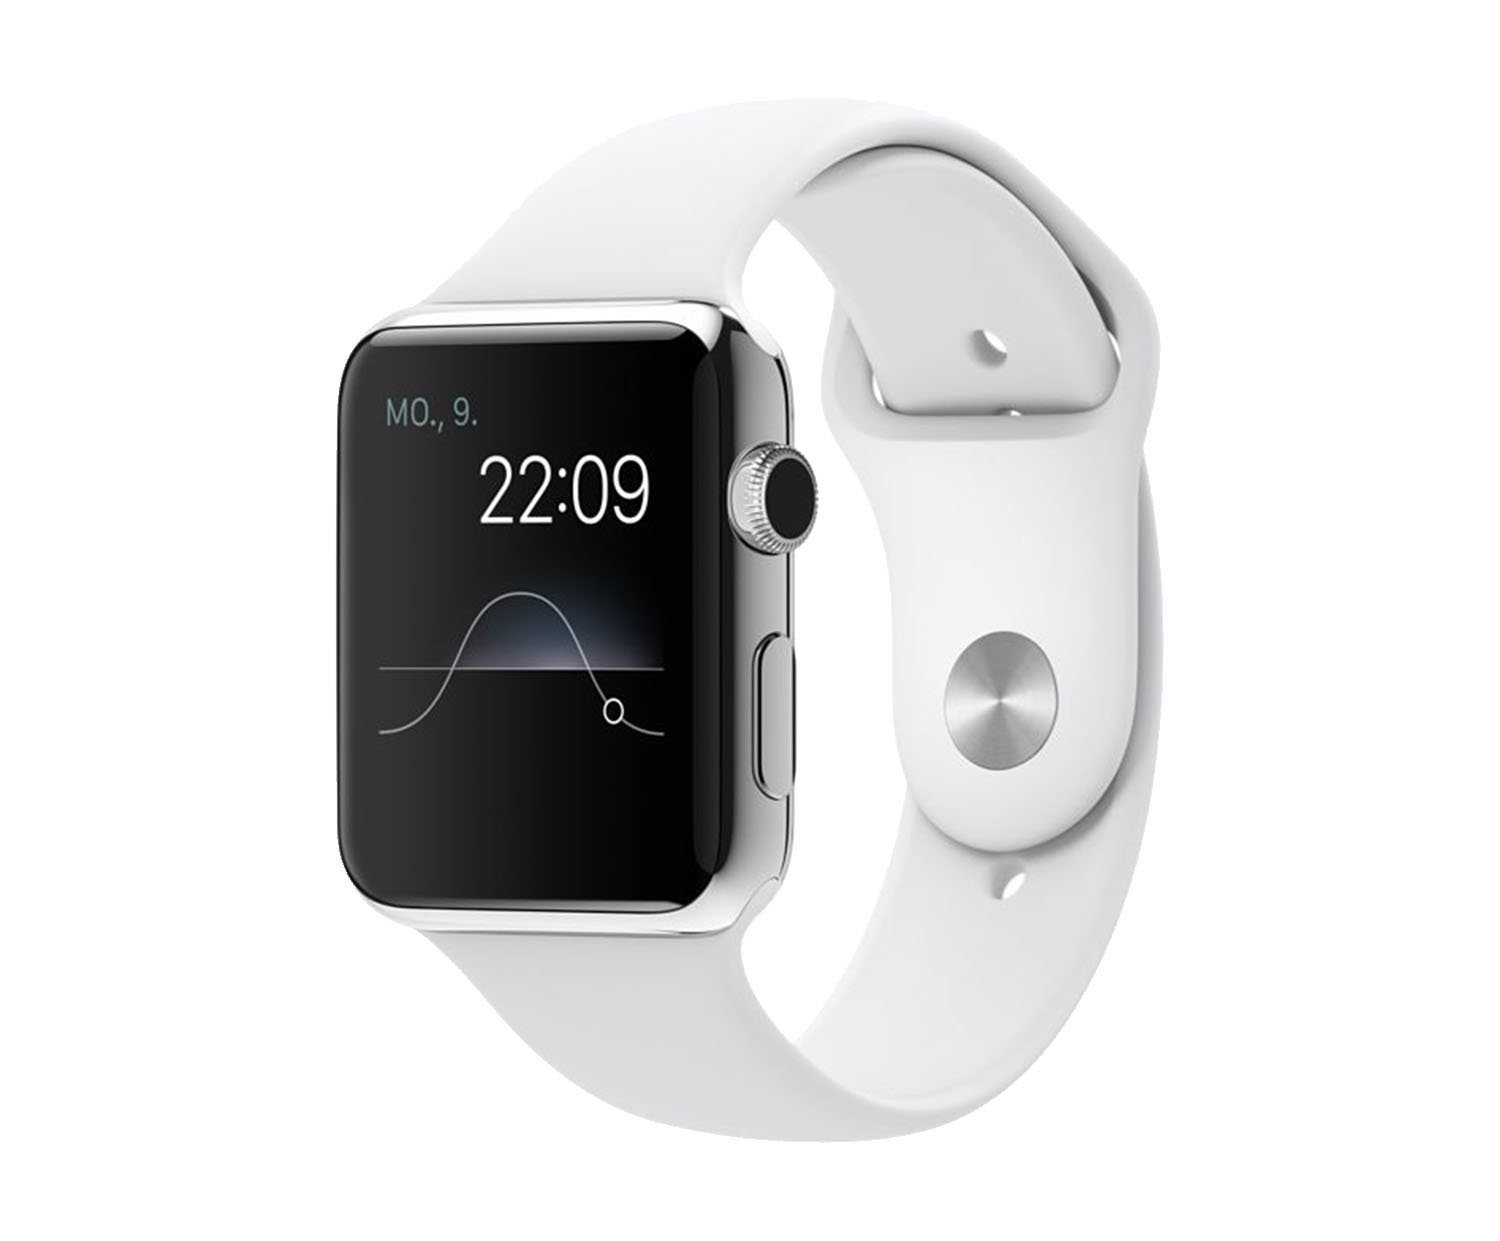 apple watch 2015 wi fi 42 mm edelstahlgeh use silber. Black Bedroom Furniture Sets. Home Design Ideas